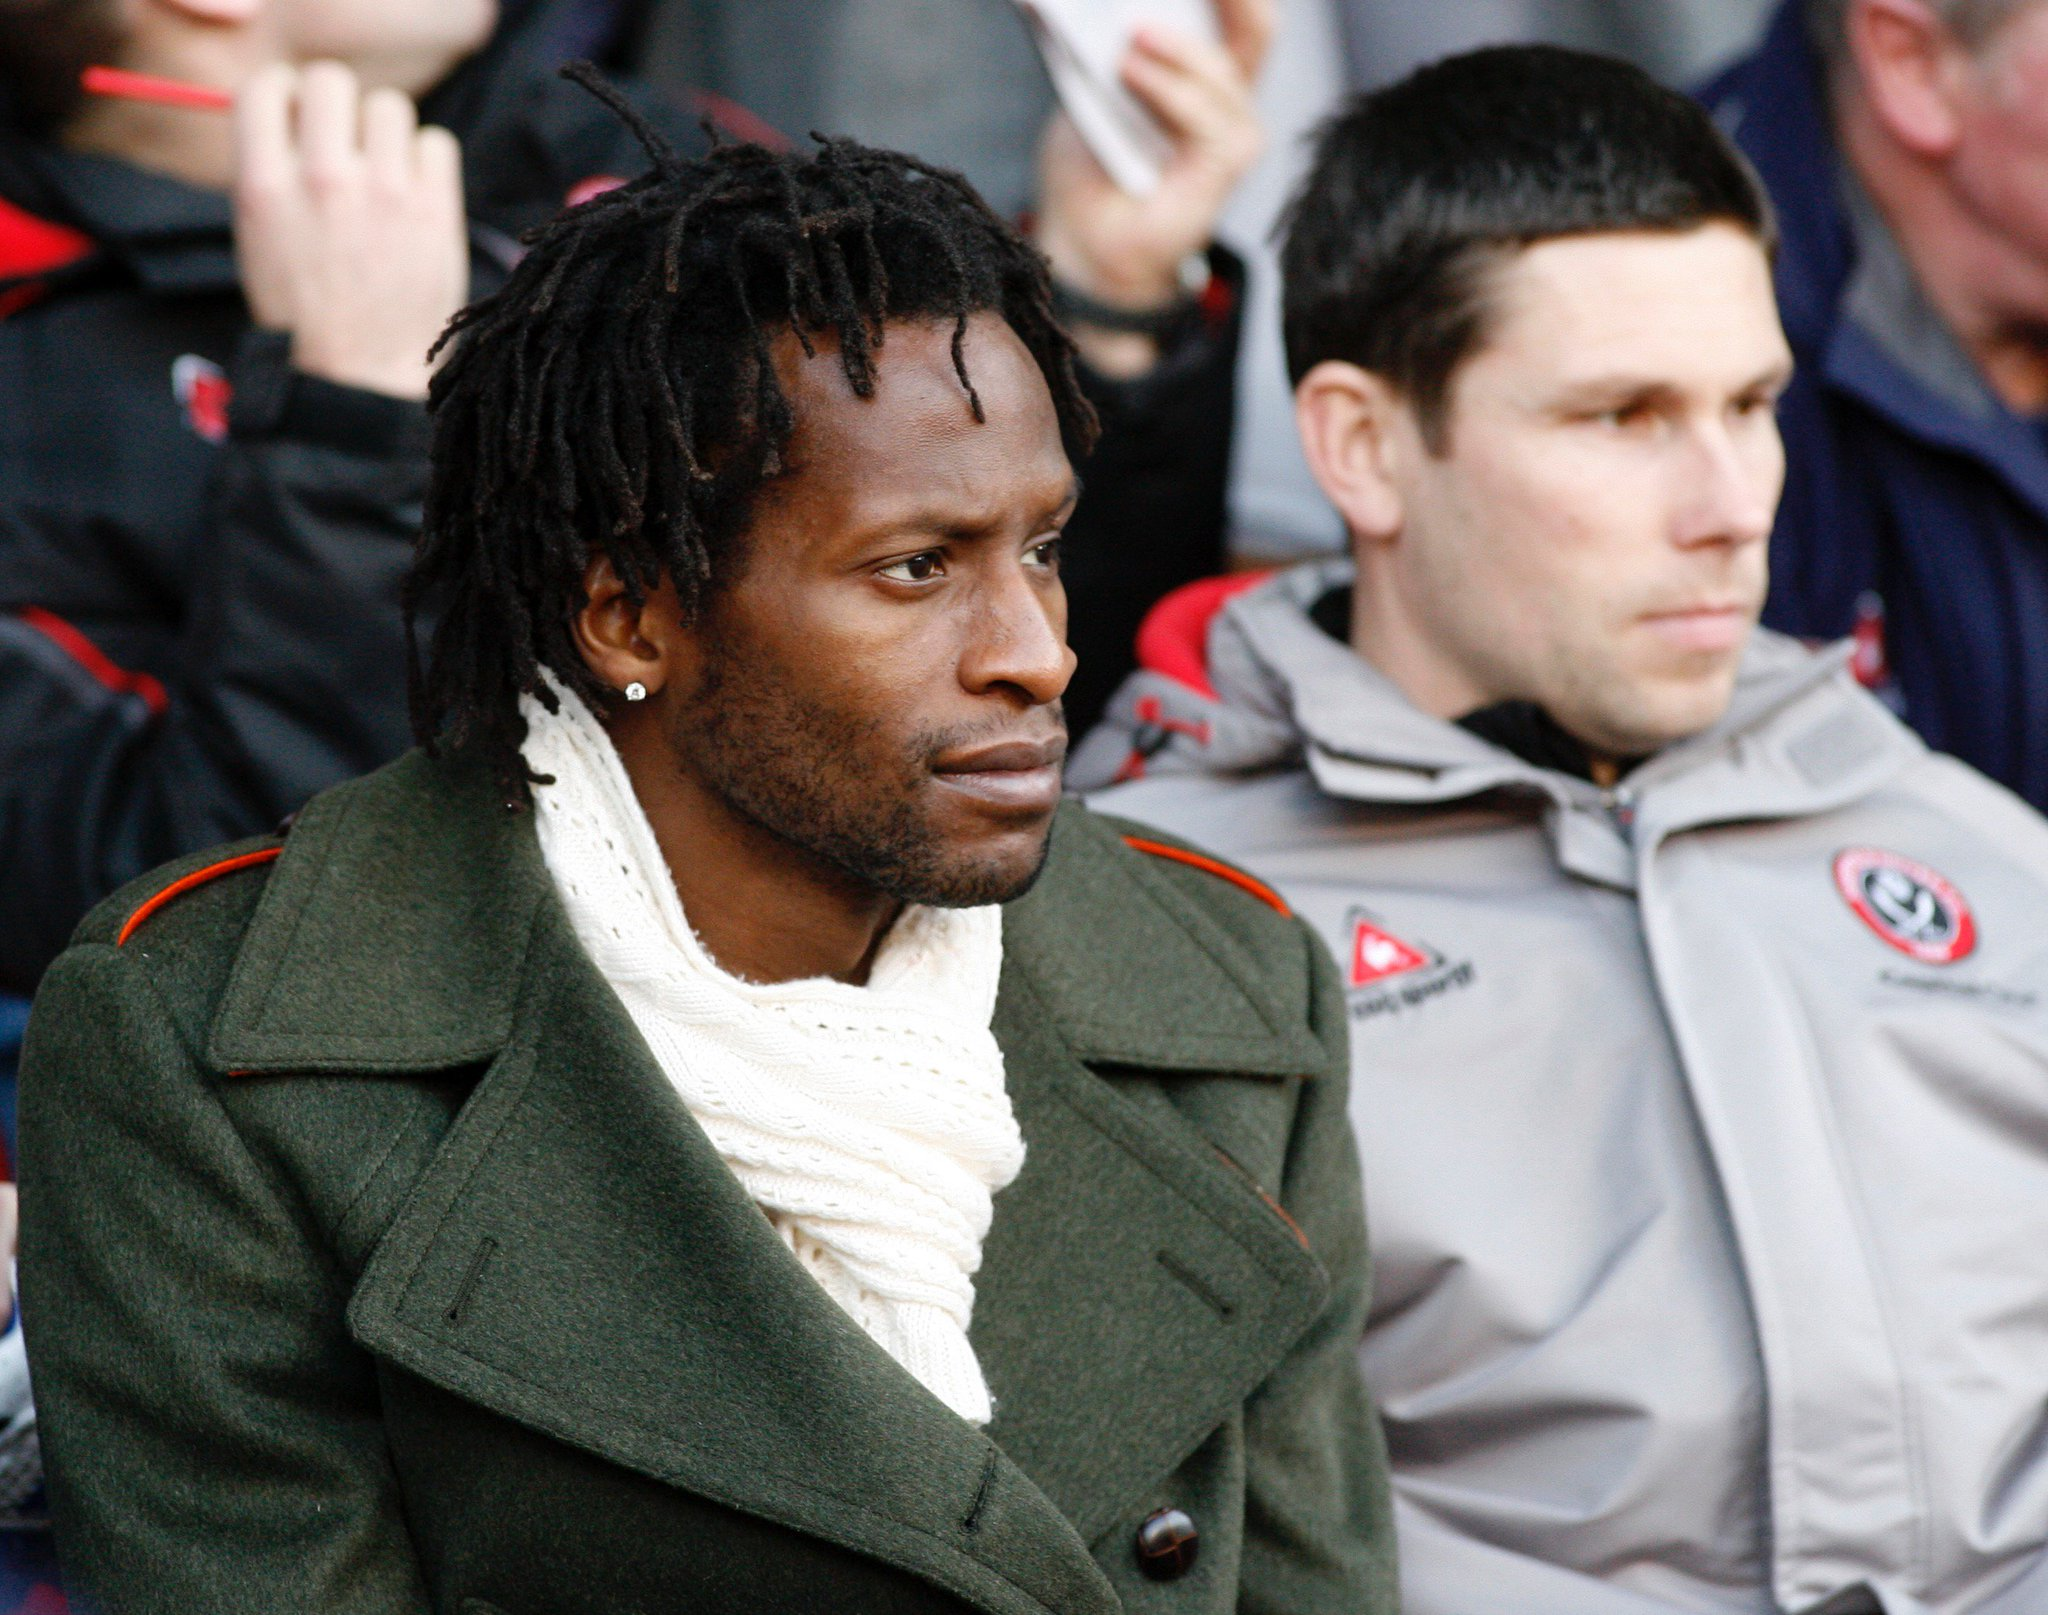 Our condolences to the family and friends of former defender Ugo Ehiogu. RIP #twitterblades https://t.co/jiYFHM0XbQ